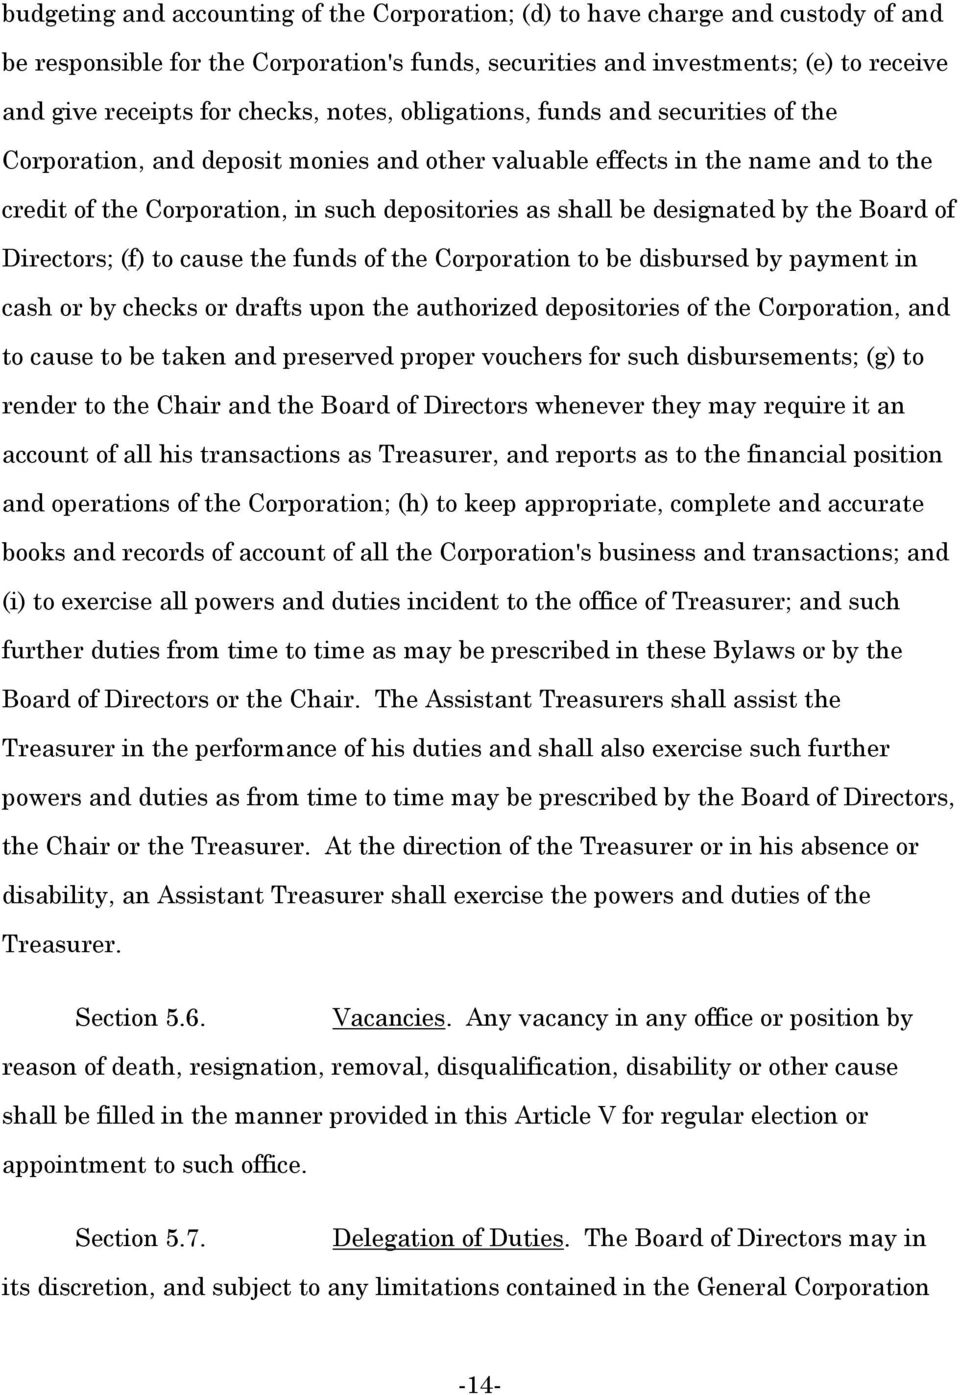 designated by the Board of Directors; (f) to cause the funds of the Corporation to be disbursed by payment in cash or by checks or drafts upon the authorized depositories of the Corporation, and to